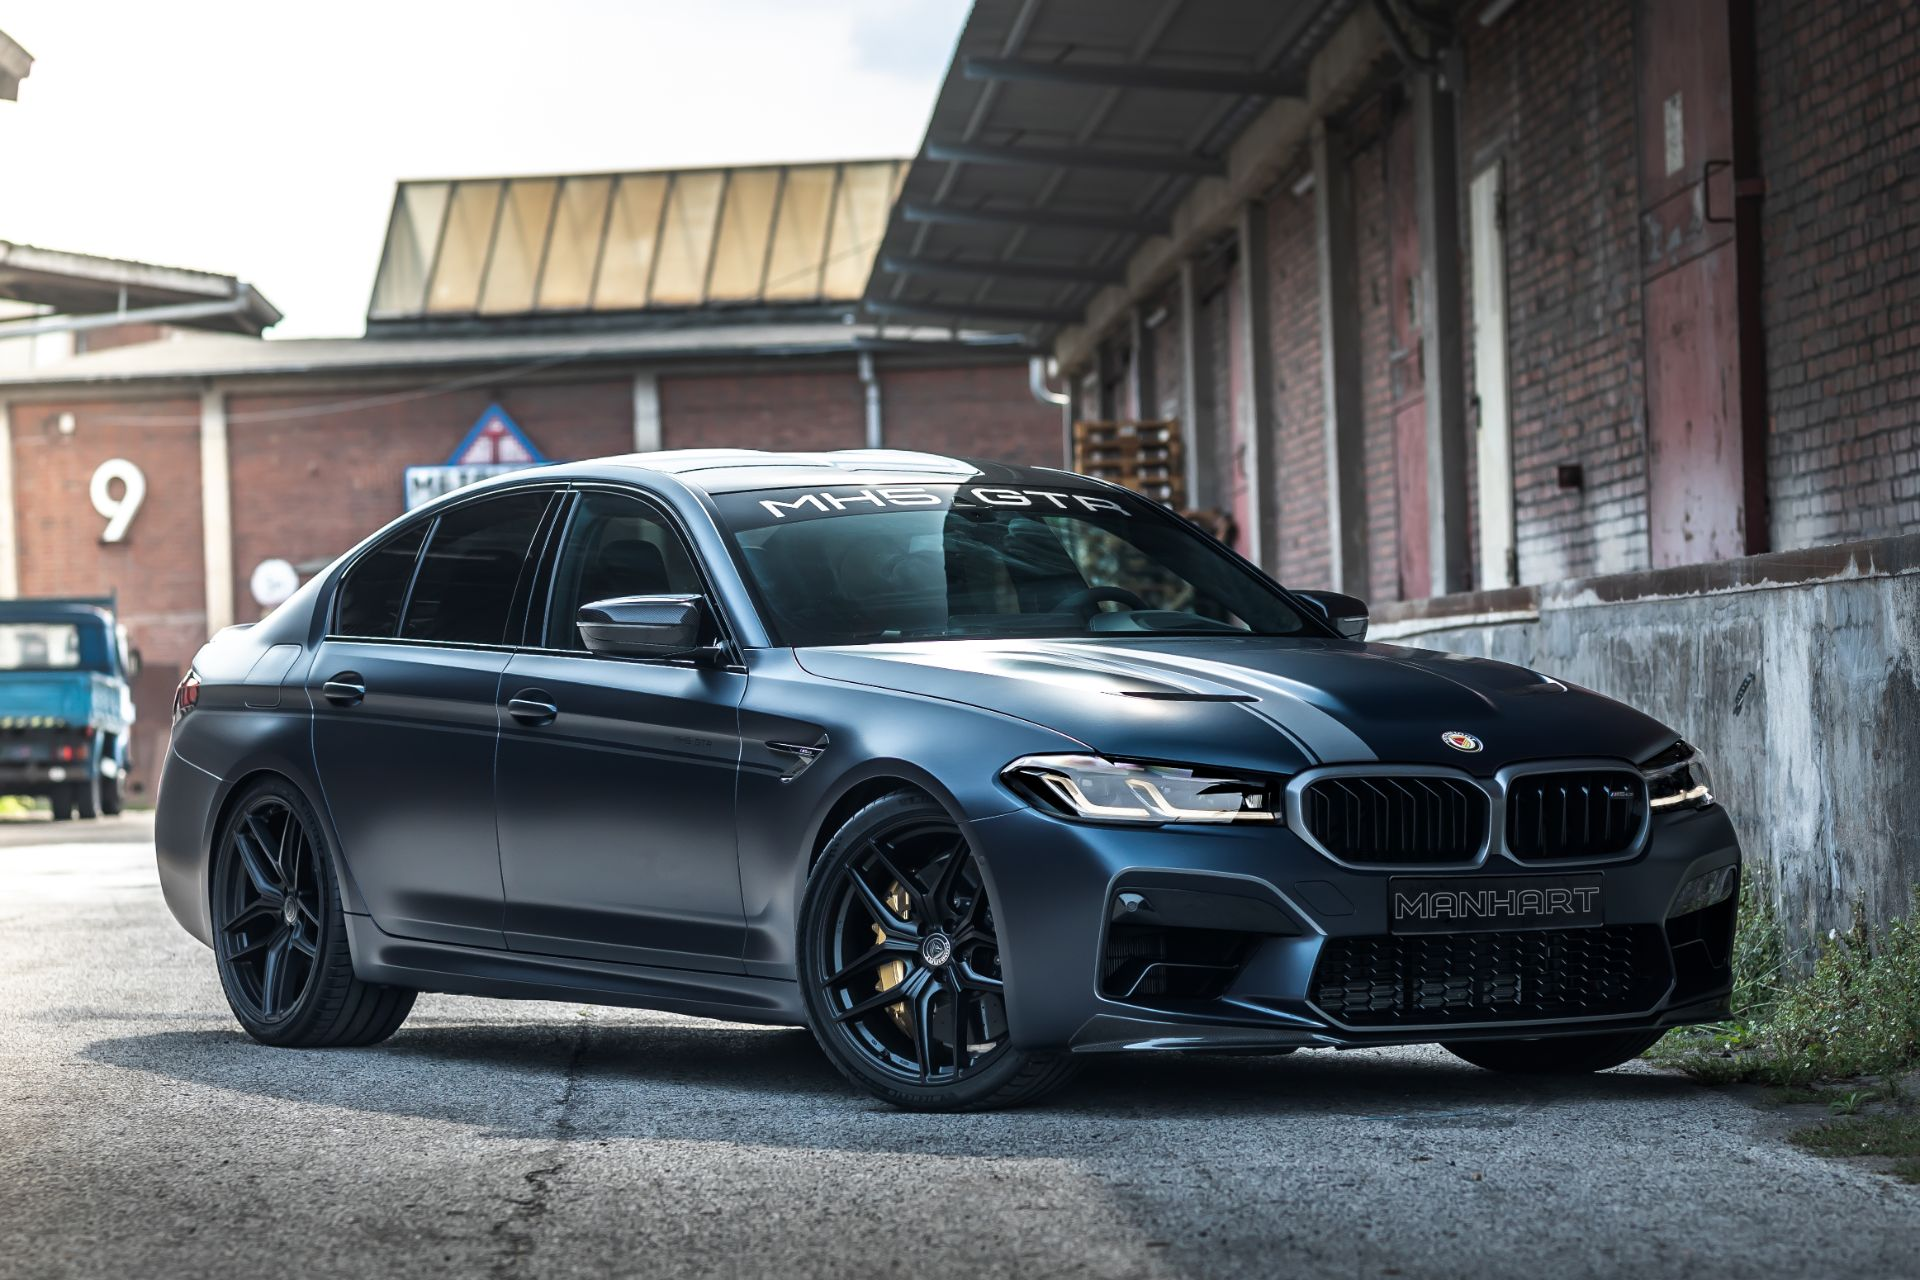 Some weeks ago, Manhart showed us a tuning kit named MH5 800 for the regular BMW M5, and here comes a unique upgrade of the CS version.